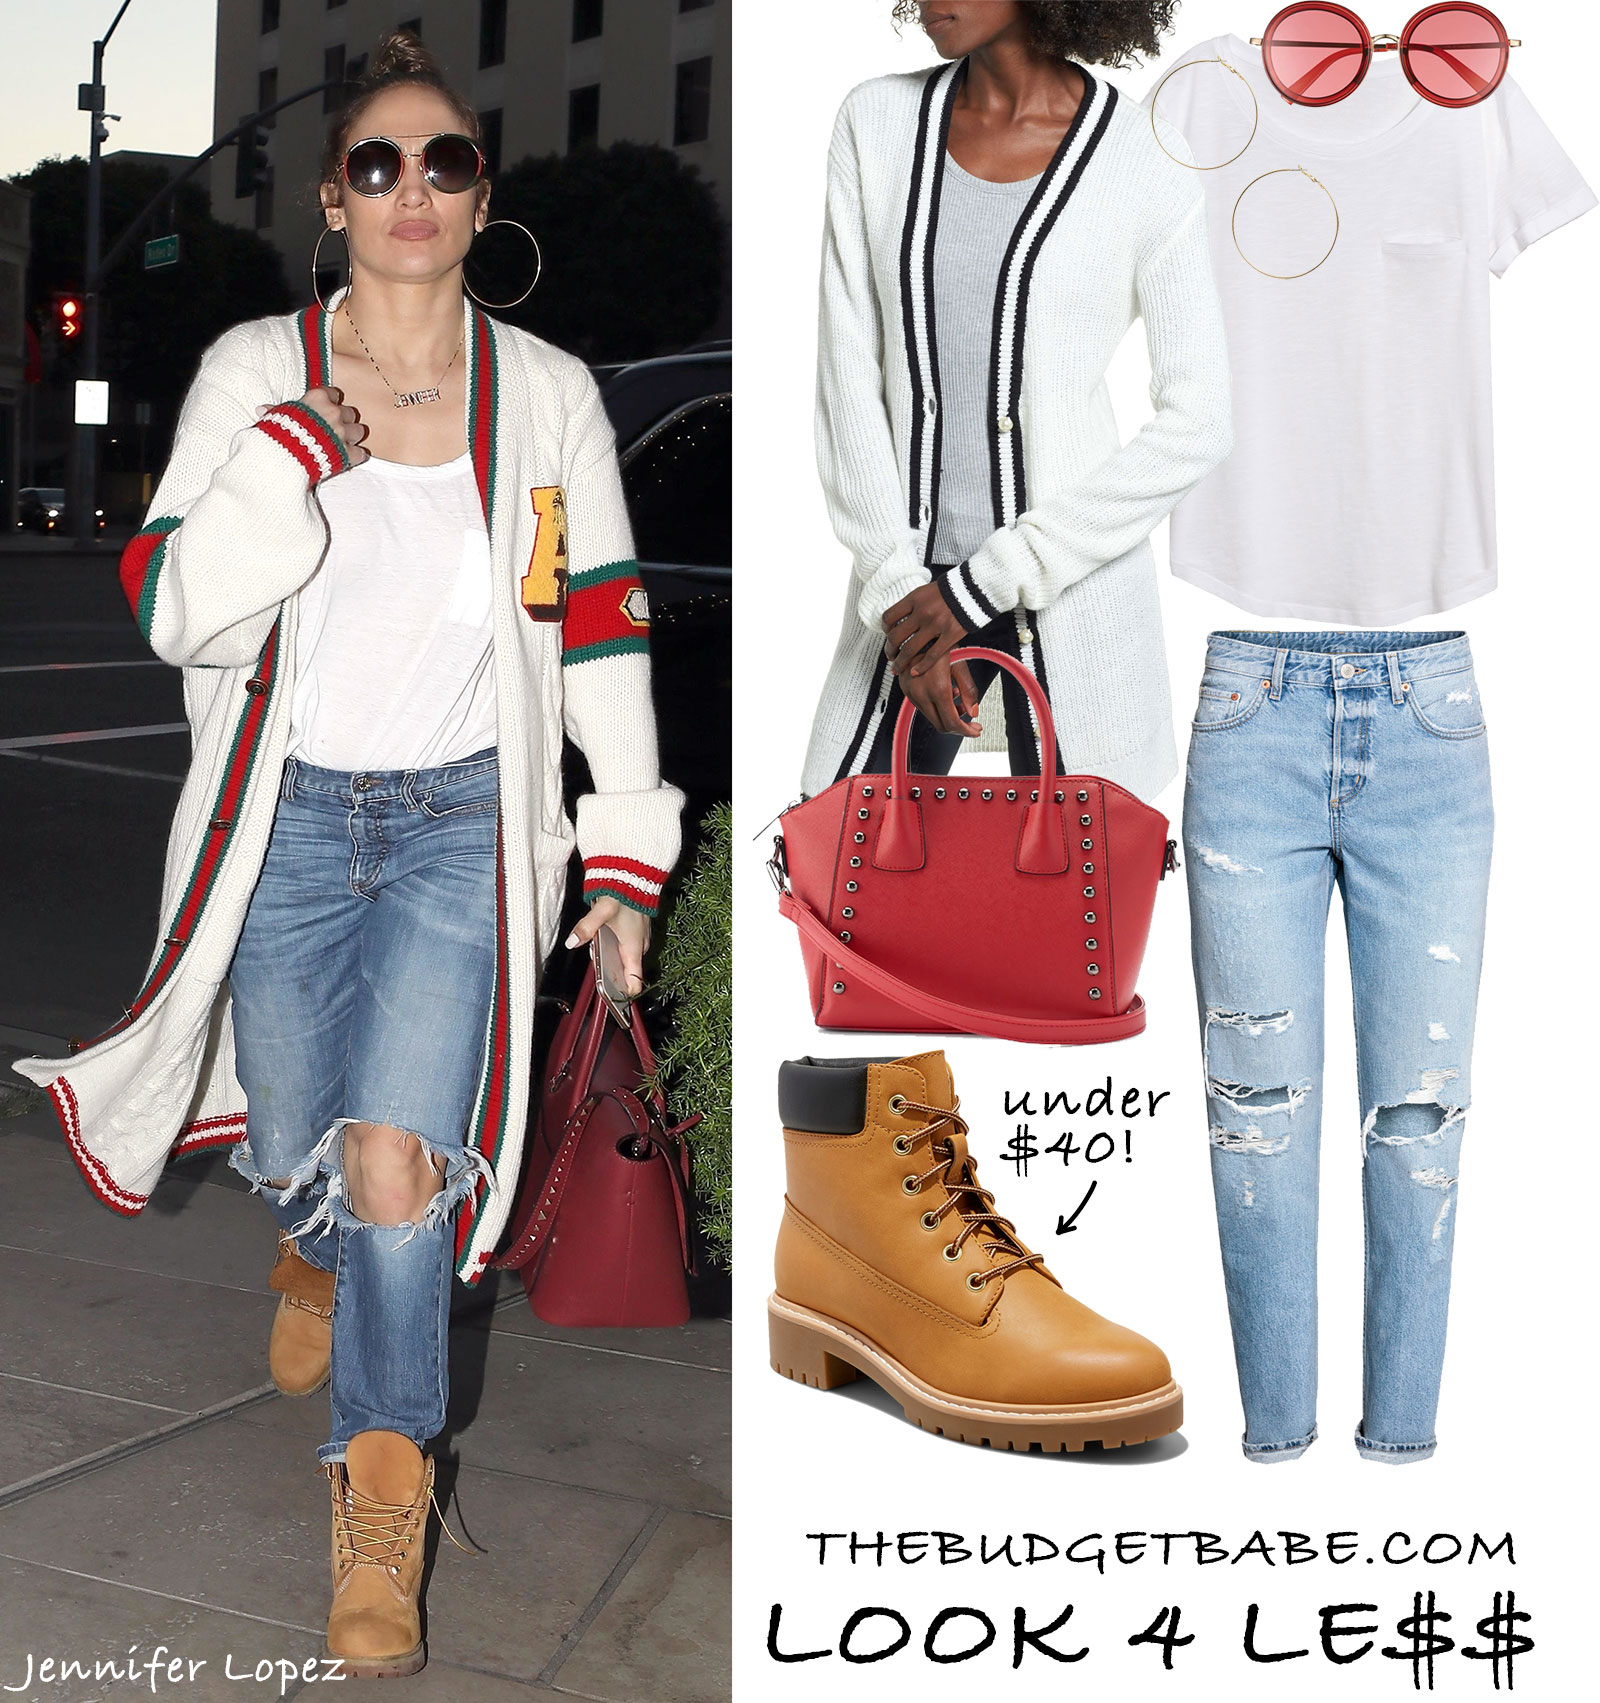 45a544658 Jennifer Lopez wears a Gucci cardigan sweater with ripped jeans, Timberland  boots and Valentino trapeze